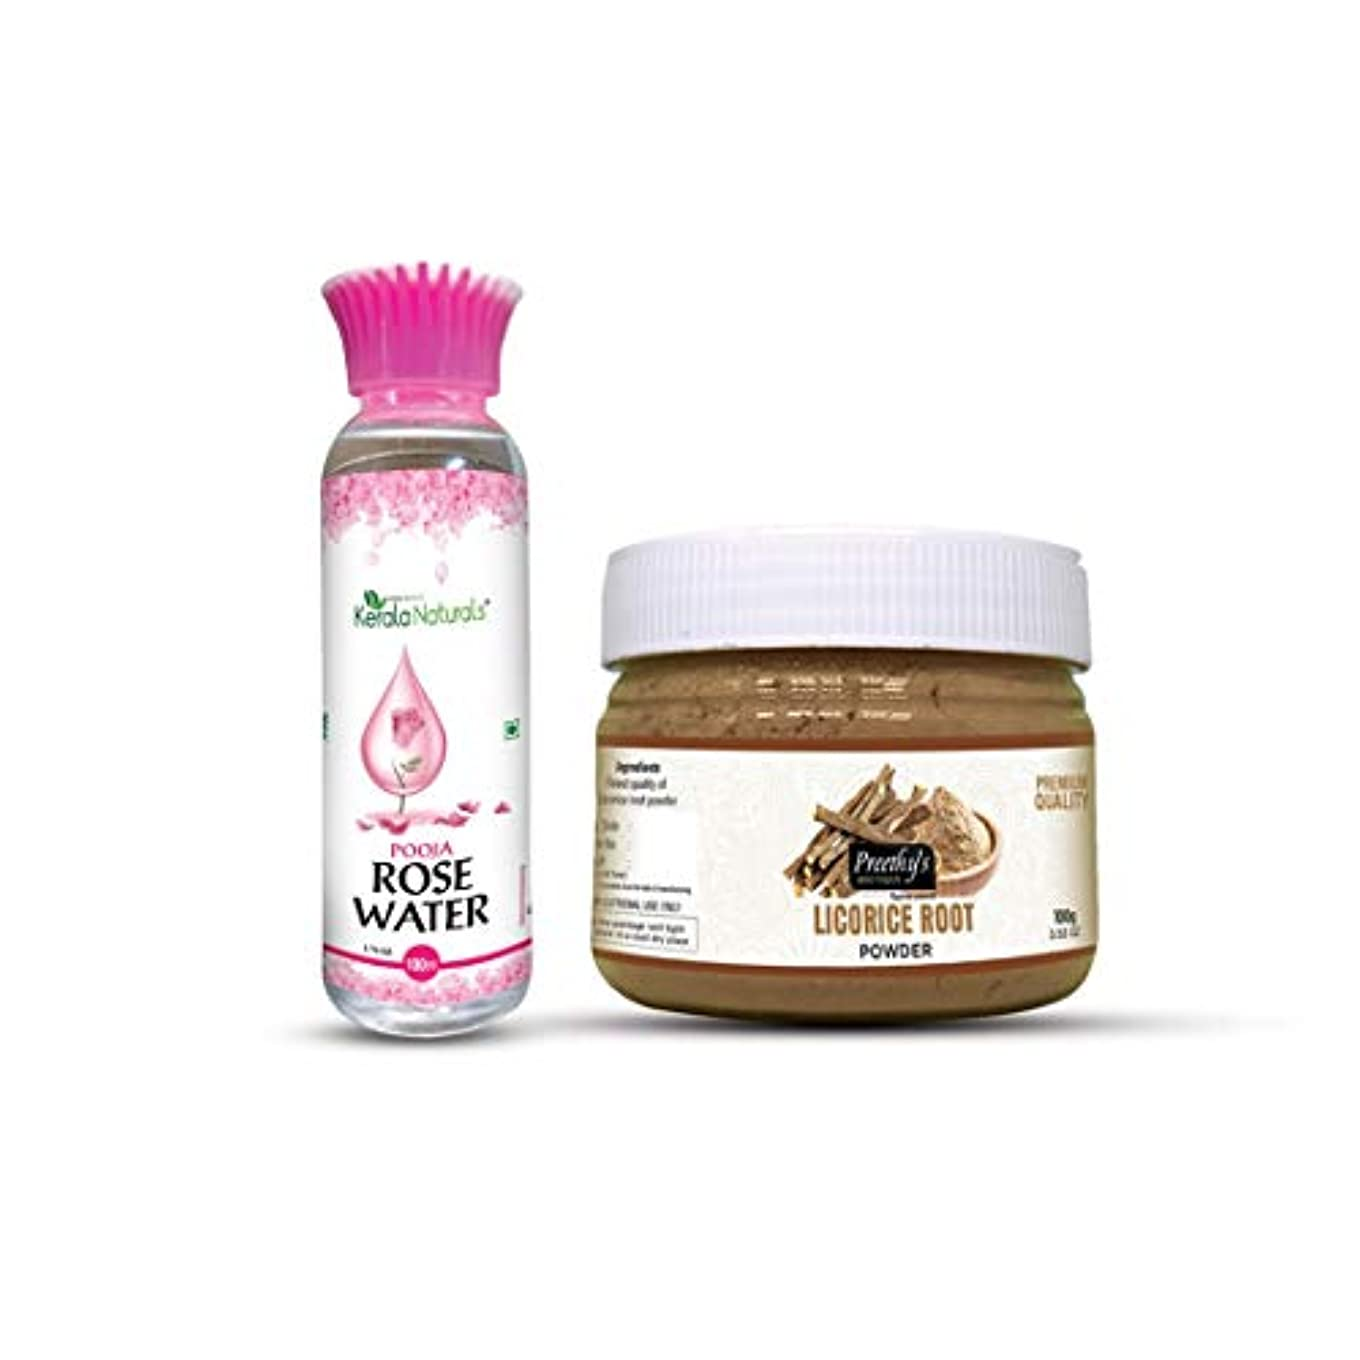 ラウズ債務者スピリチュアルCombo of Licorice root powder 100gm + Rose water 100ml - Natural Remedies for Skin Disorders, Fade Dark Spots,...